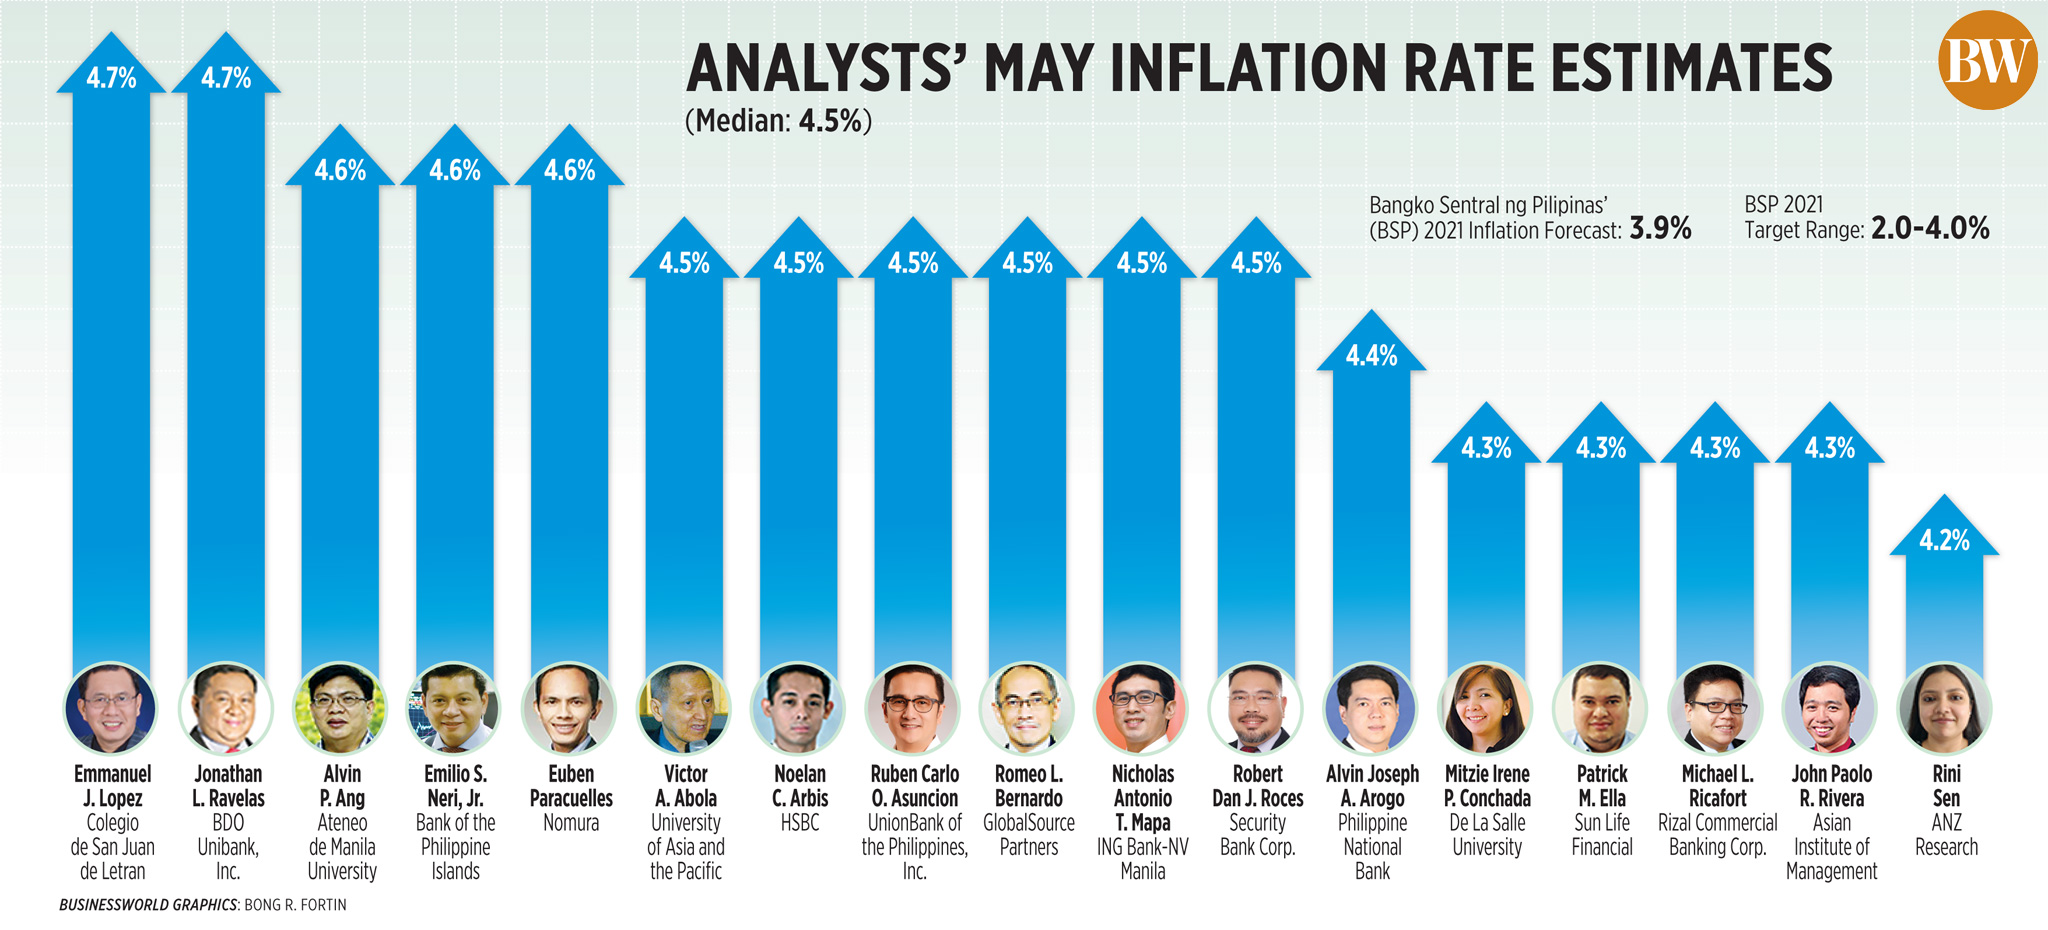 Analysts' May Inflation Estimates (2021)